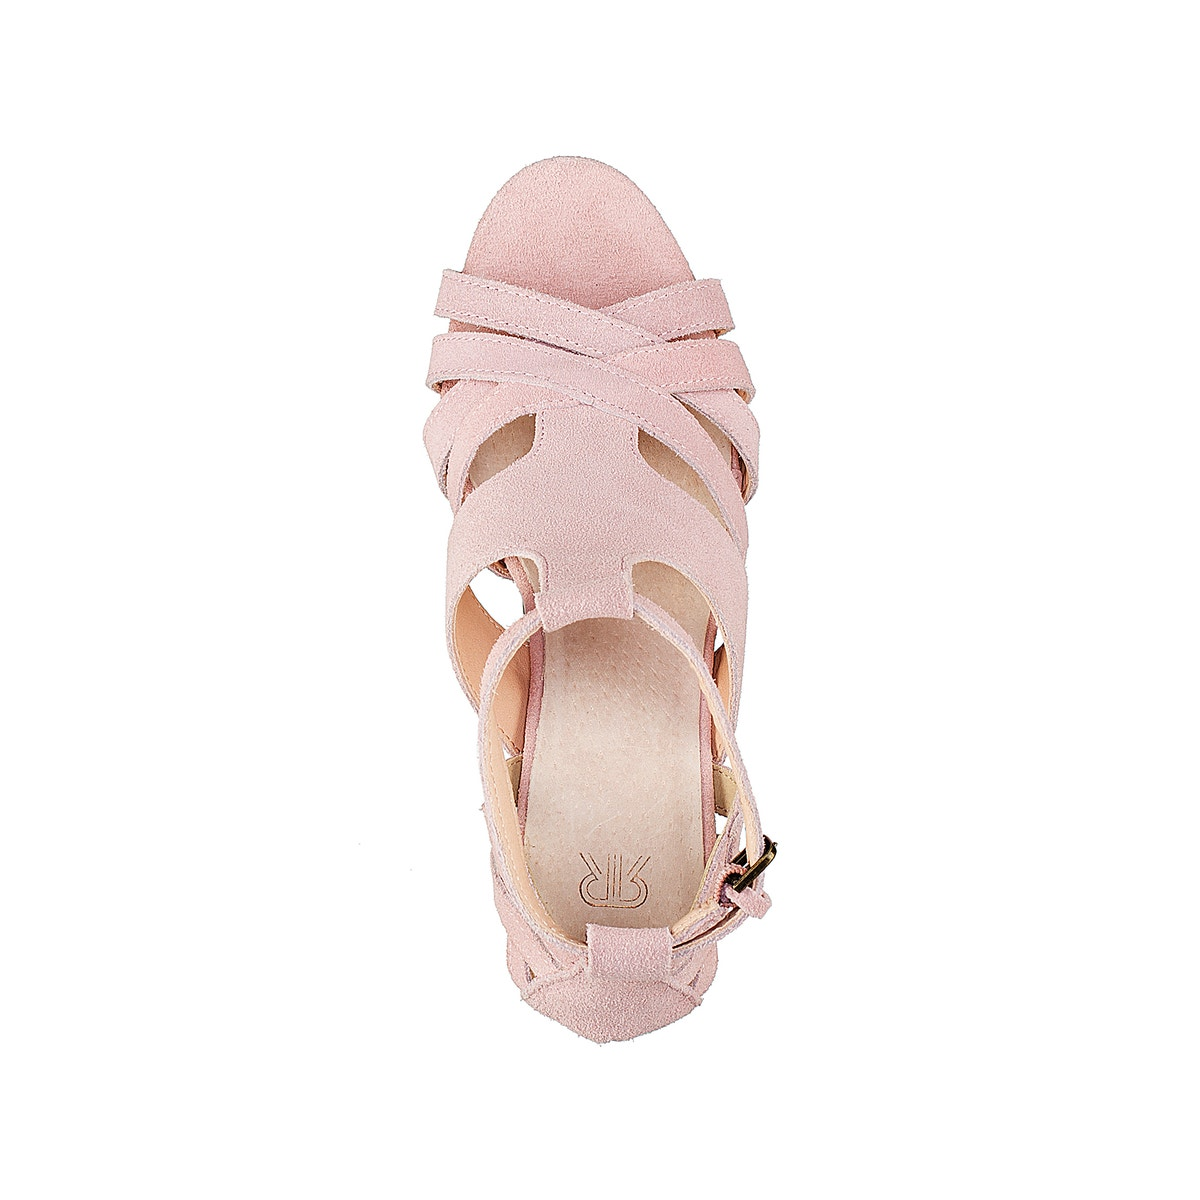 La ROToute Collections Damenschuhe Heel Leder Sandales With Rounded Heel Damenschuhe 230e58